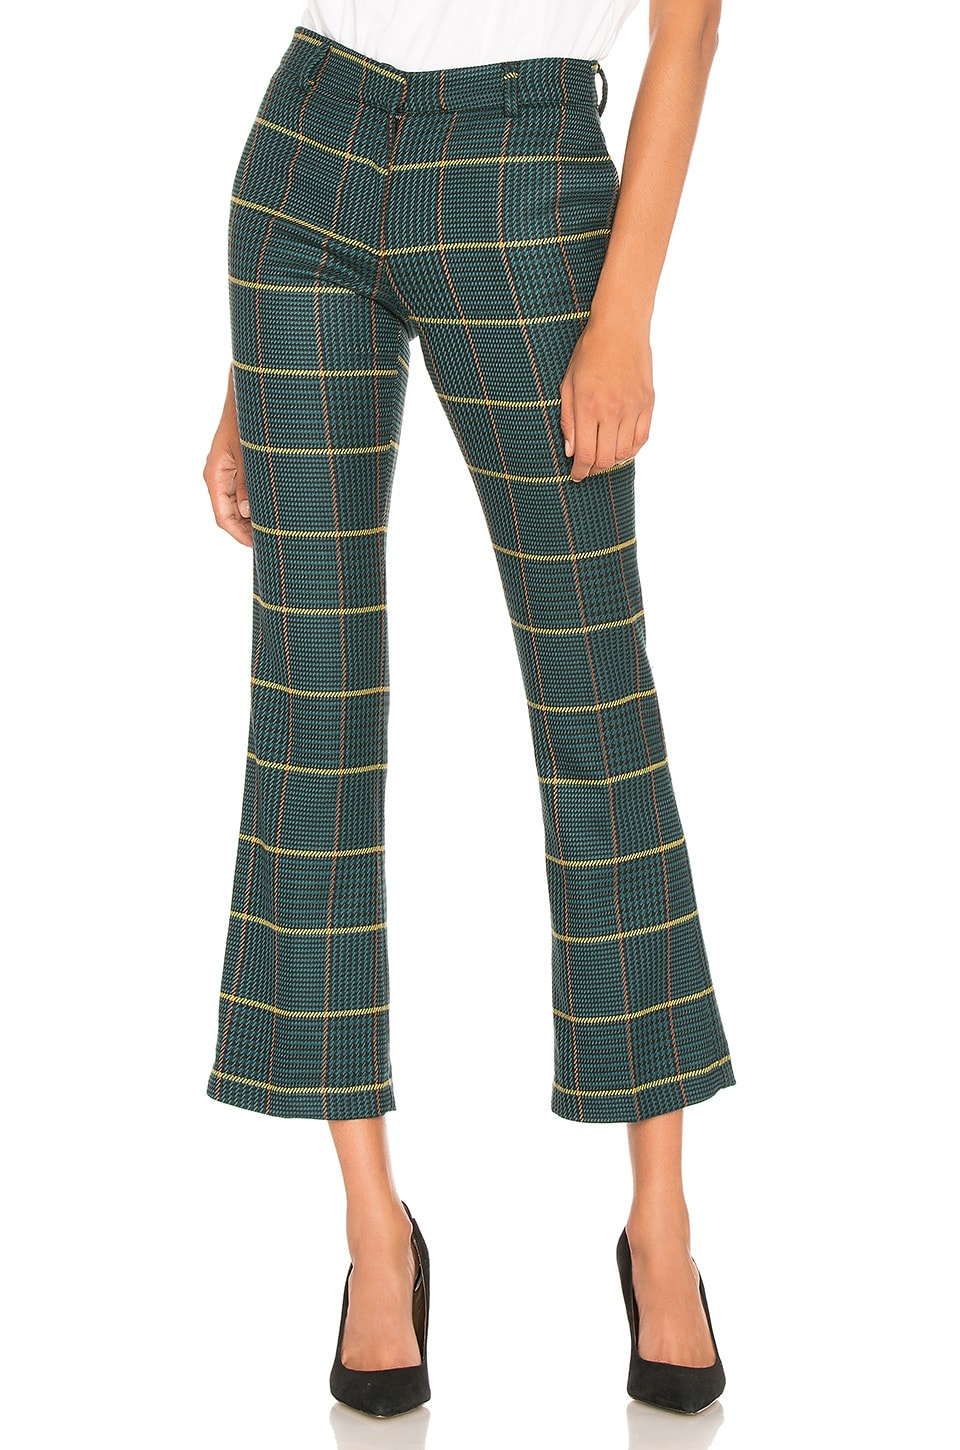 ANINE BING Cindy Pant in Green Plaid